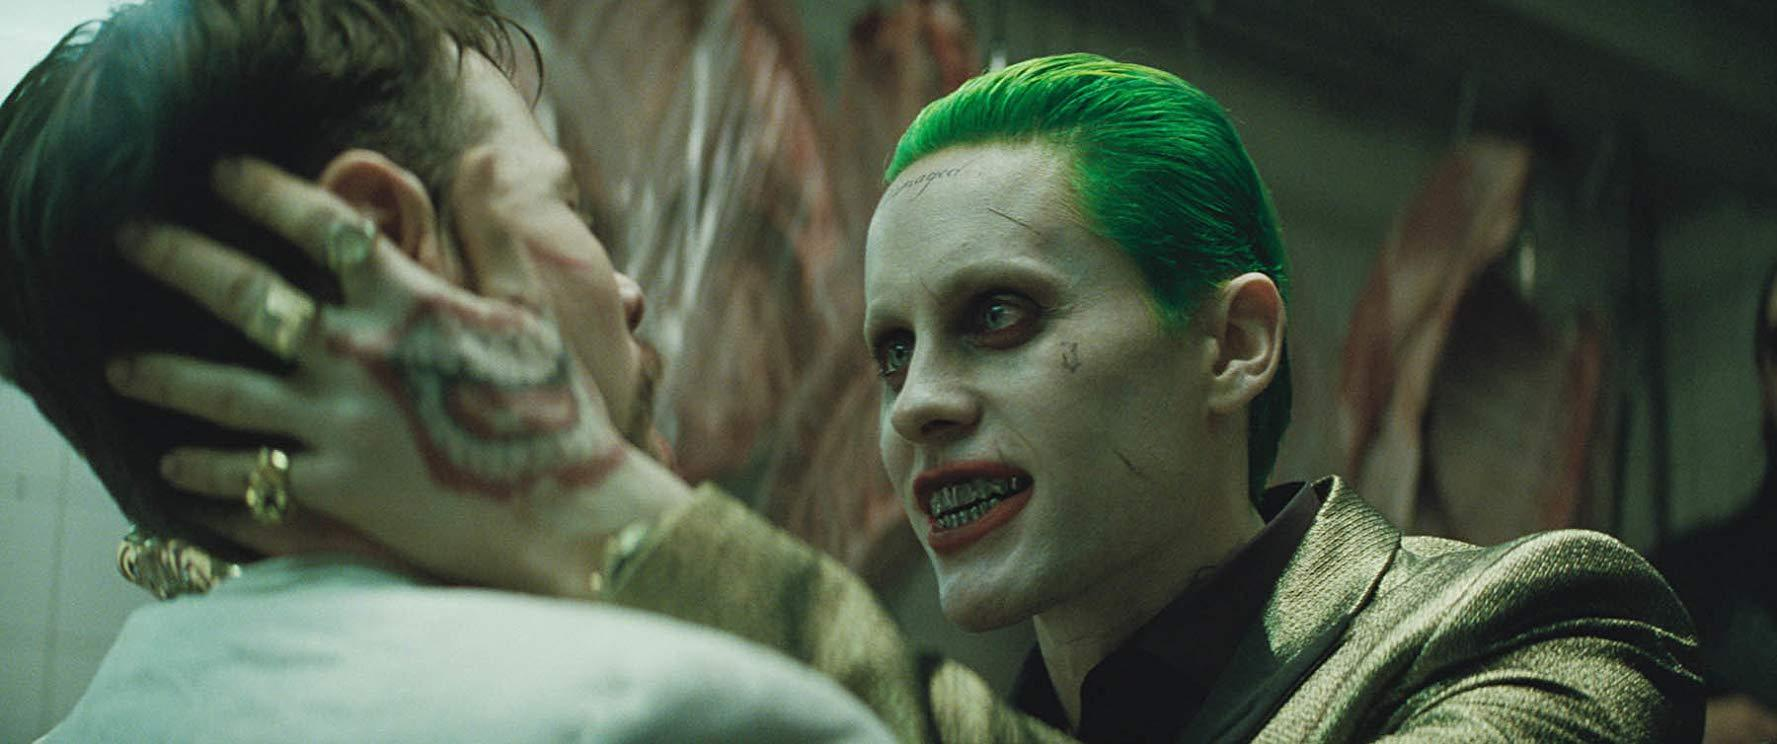 Jared Leto was distraught by decision to cast Joaquin Phoenix as Joker